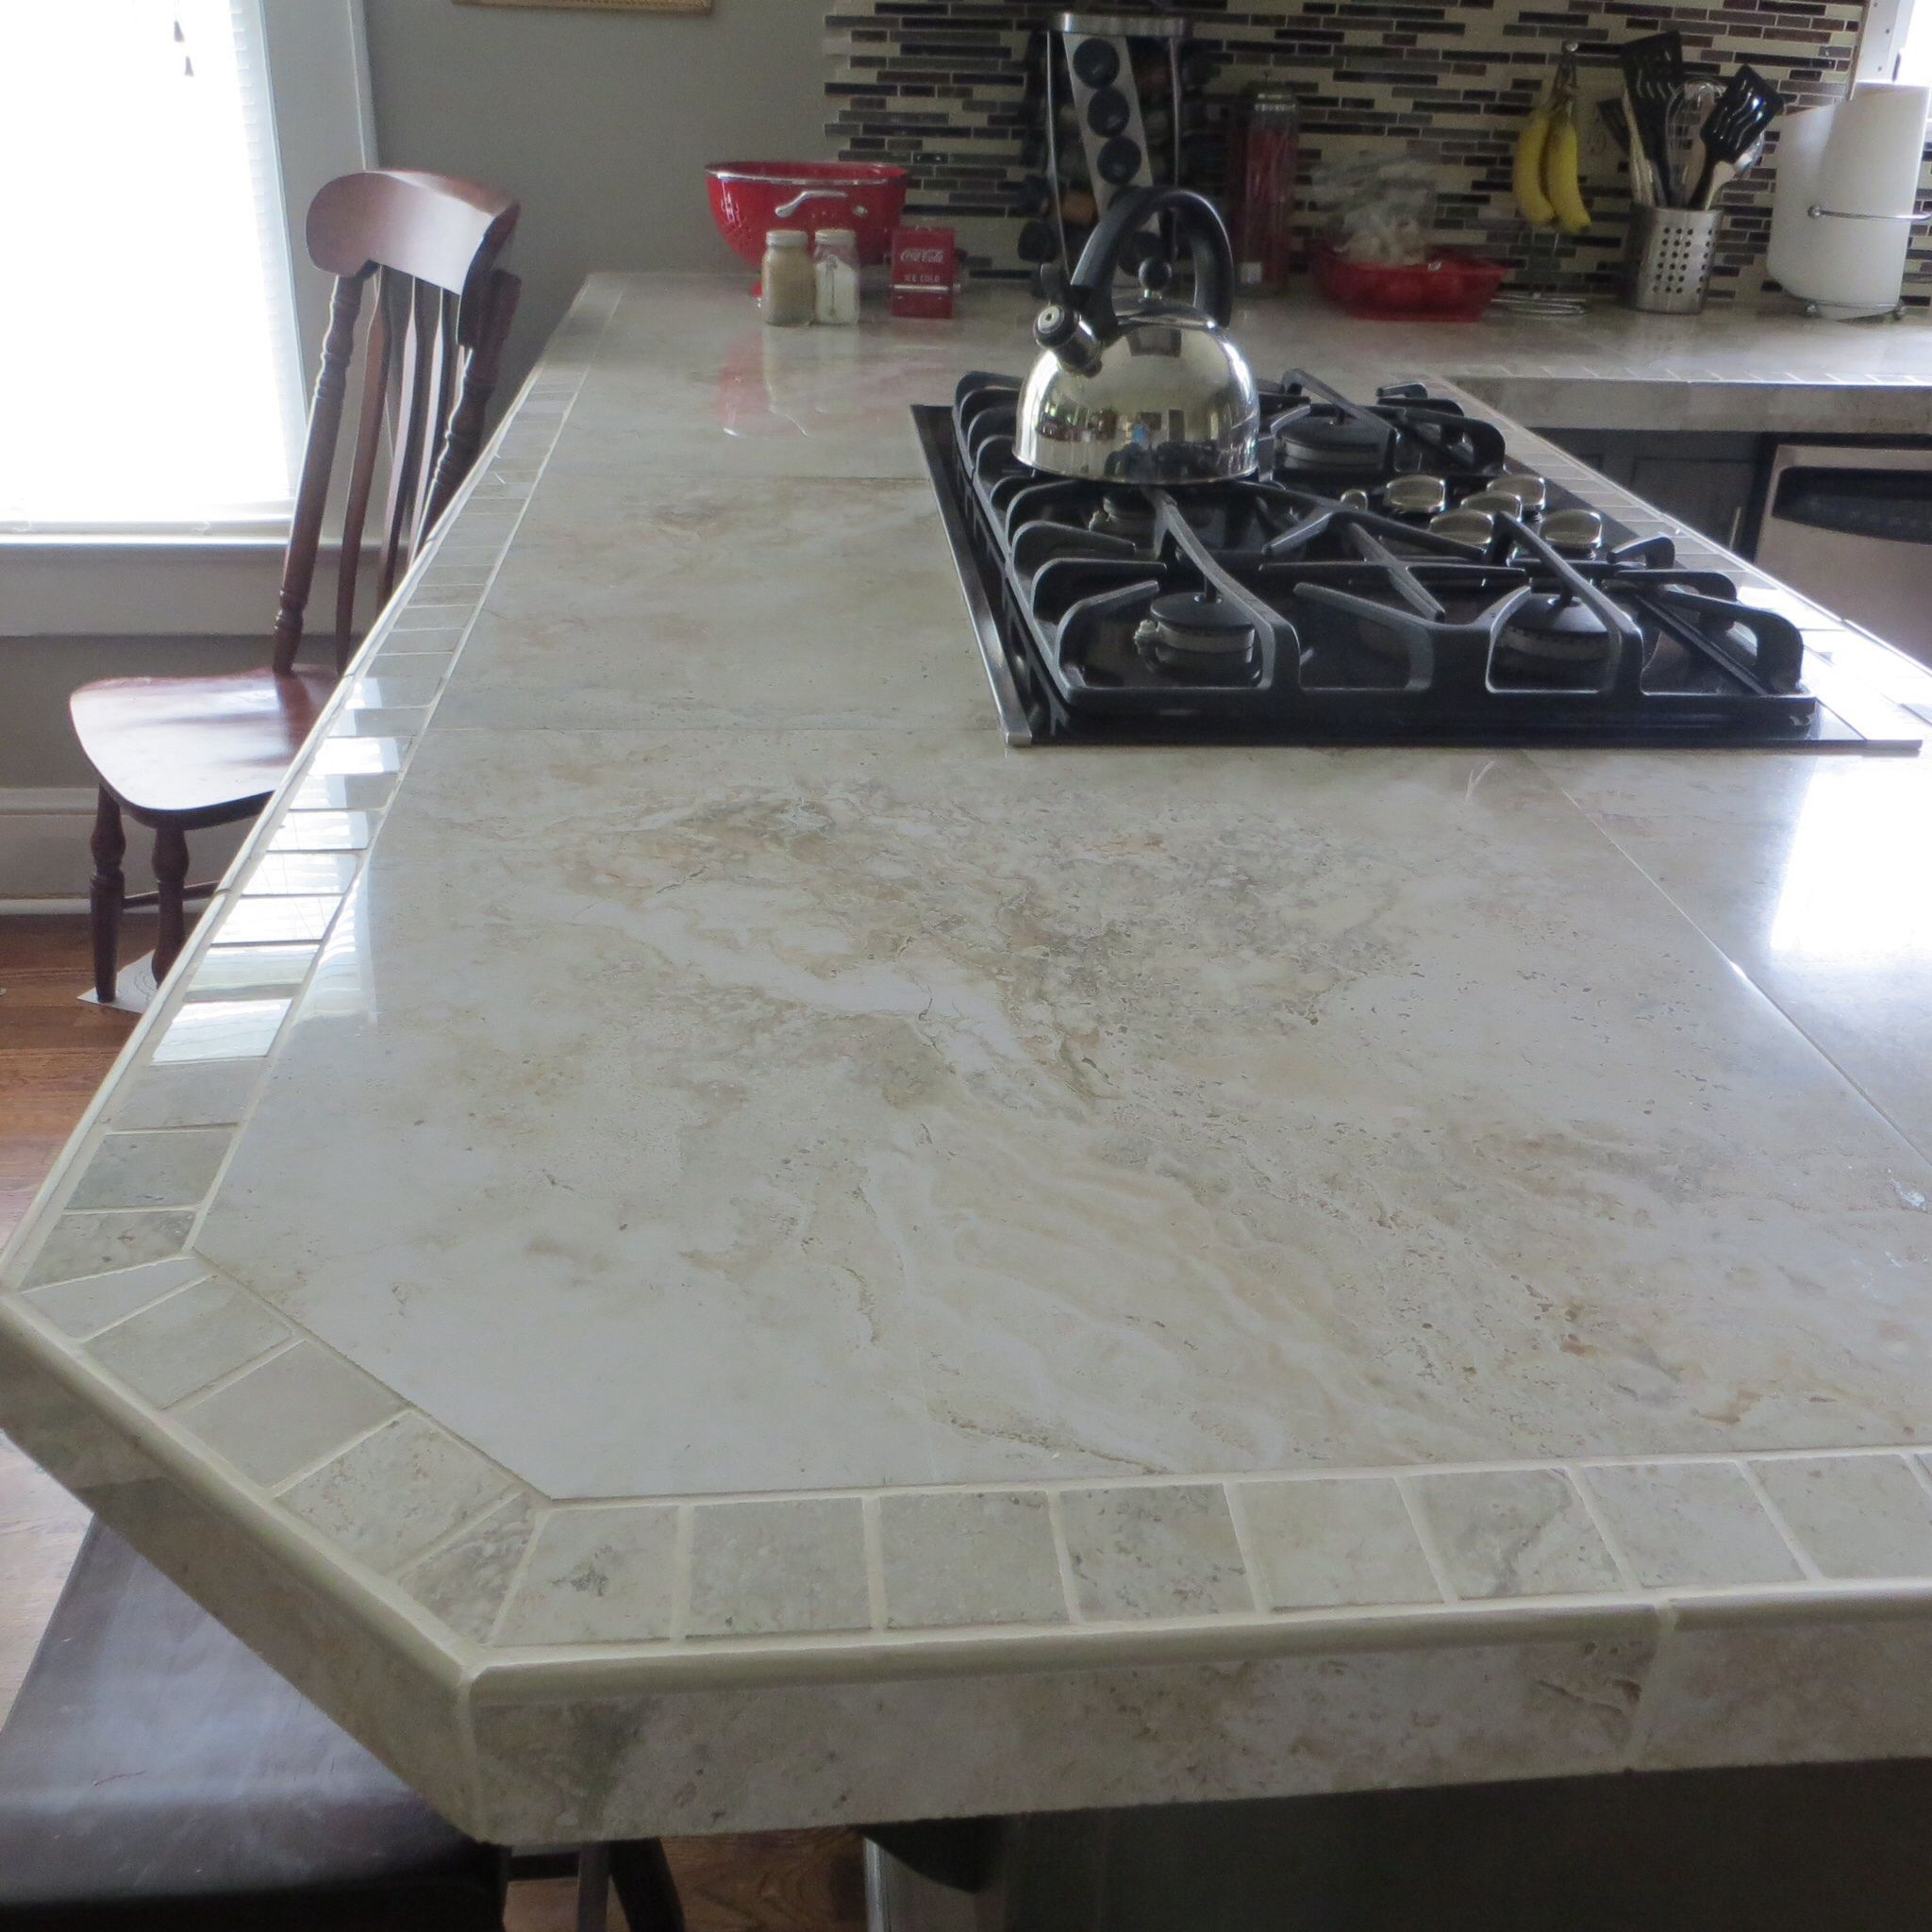 I Used 24x24 Inch Polished Porcelain Tiles For The Countertop